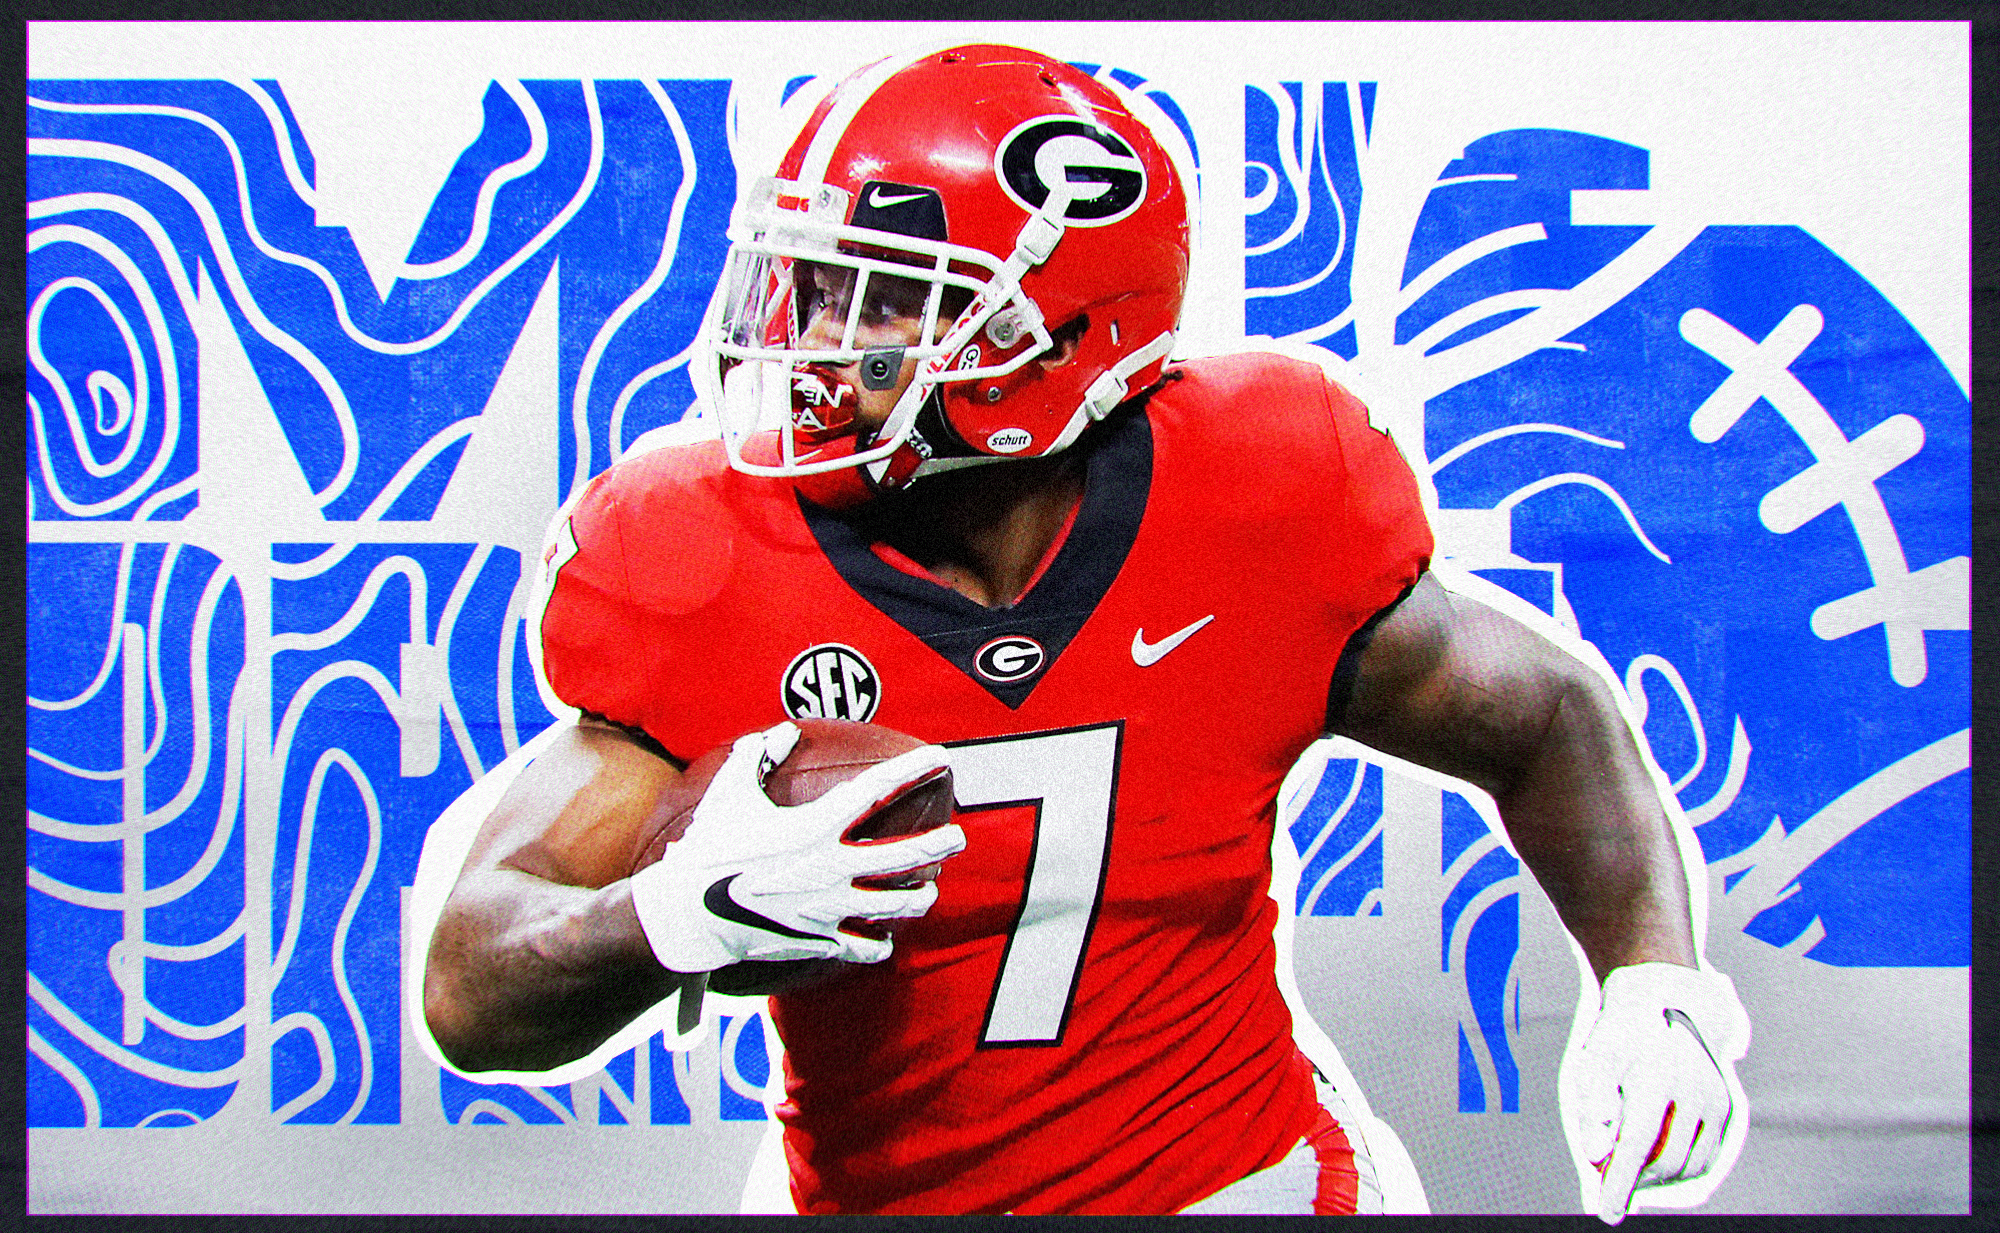 """Artwork of NFL Draft RB prospect D'Andre Swift carrying the ball at Georgia, superimposed on a white background with """"mock draft"""" in blue letters"""